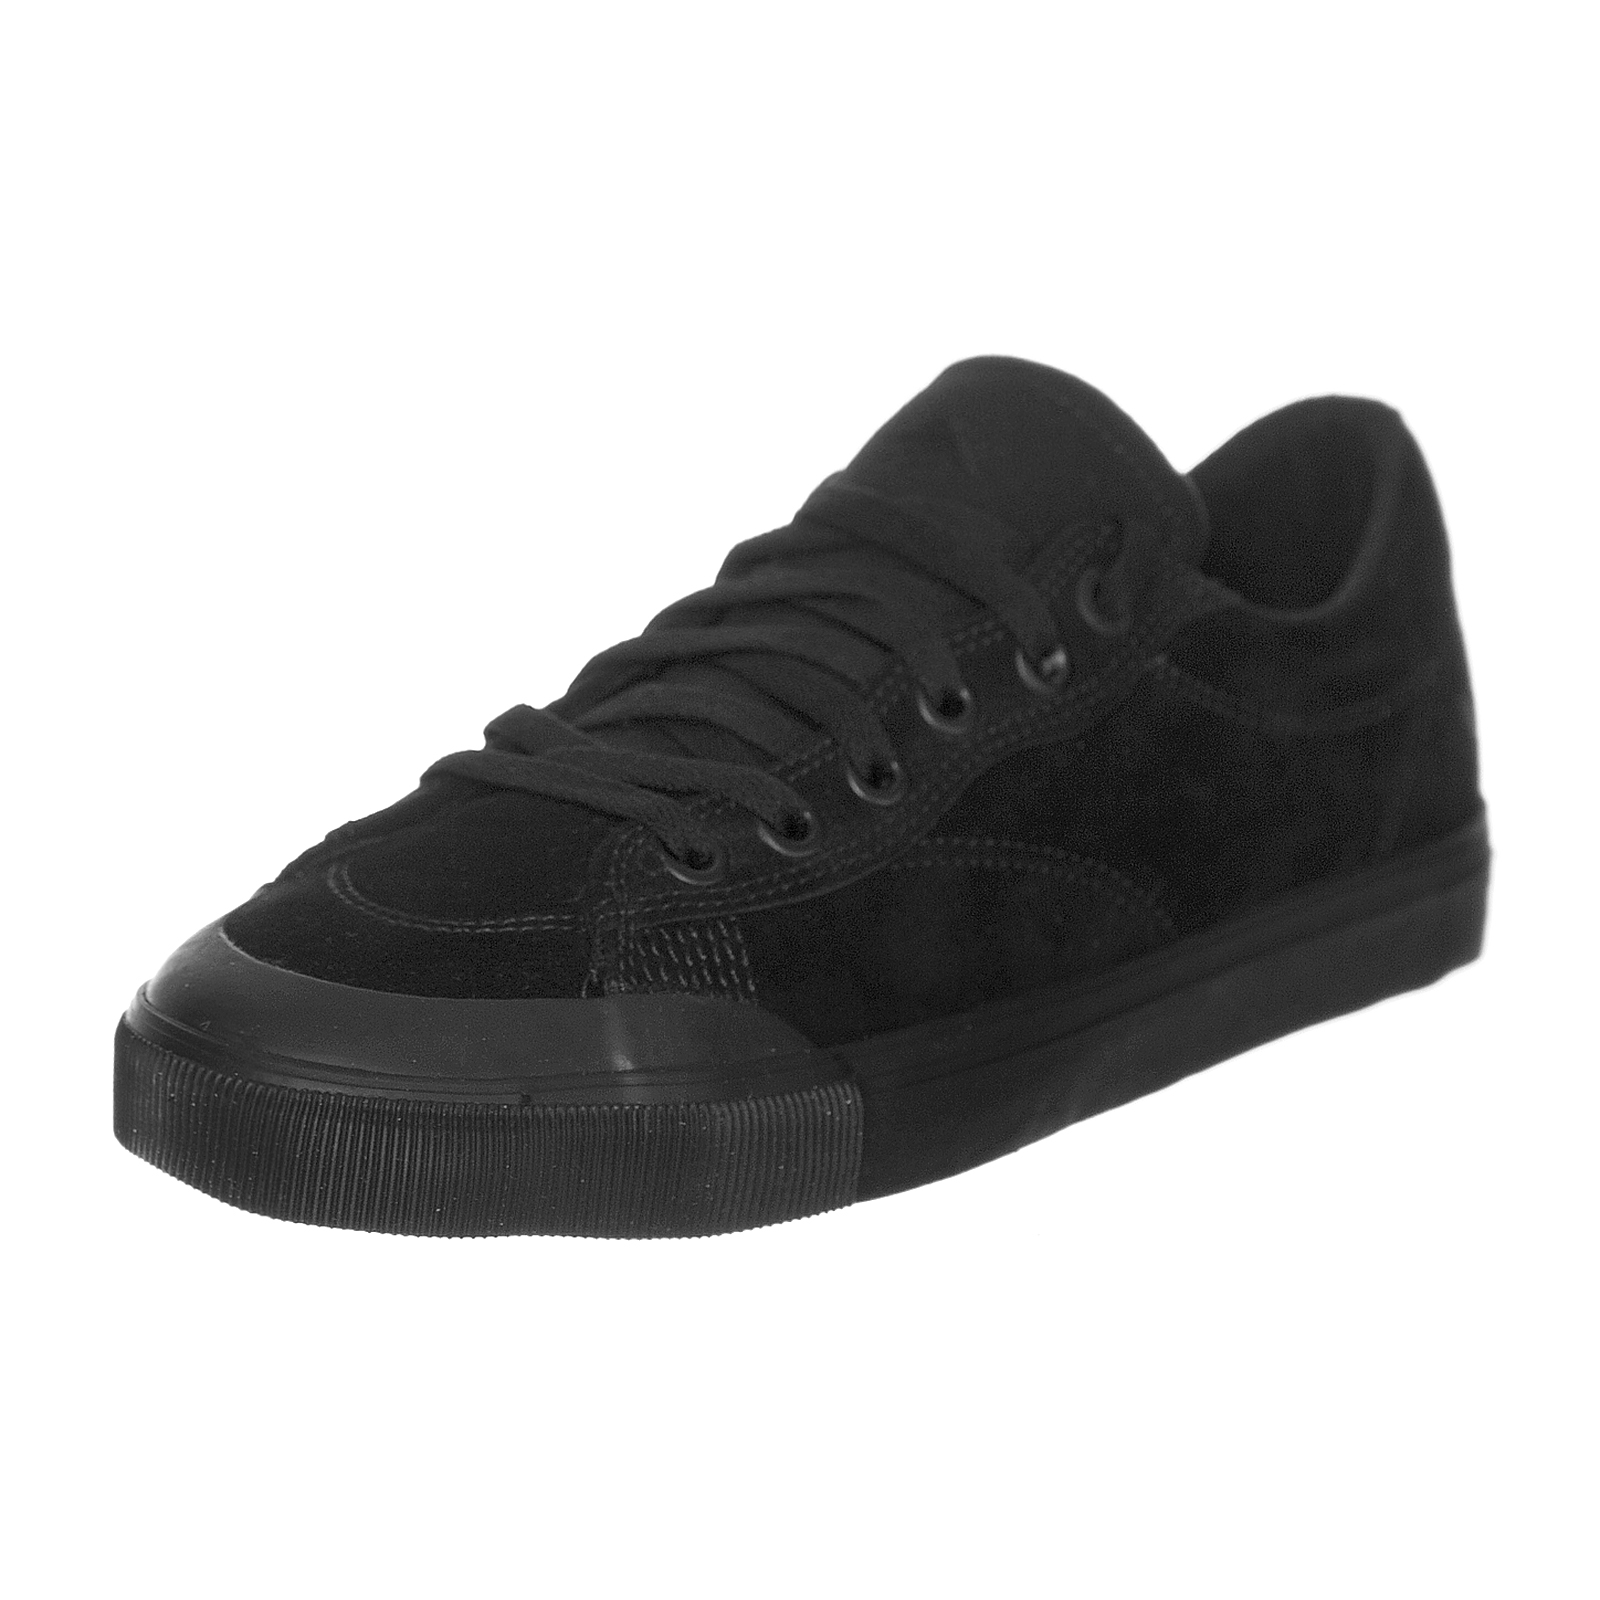 Emerica Sneakers Indicator Low Black/Black/Gum Nero